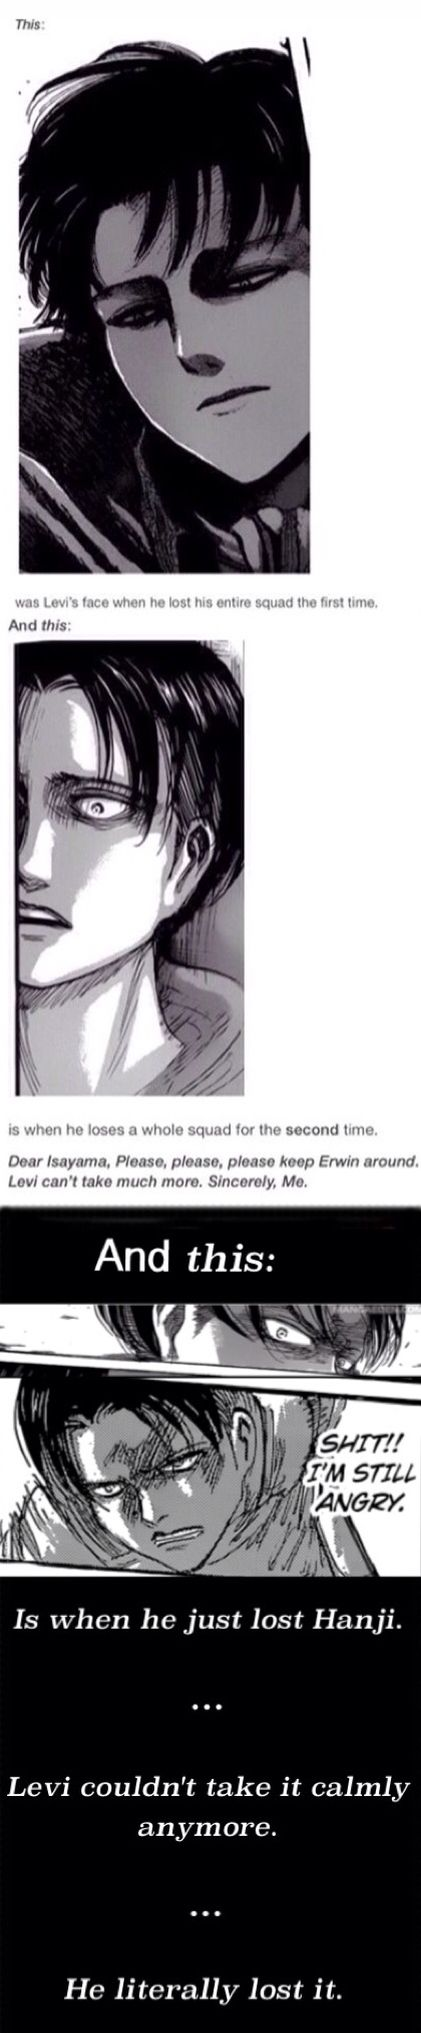 """Look at the bottom! """"And this is when He just lost Hanji... He couldn't take it calmly anymore... He literally lost it."""" 